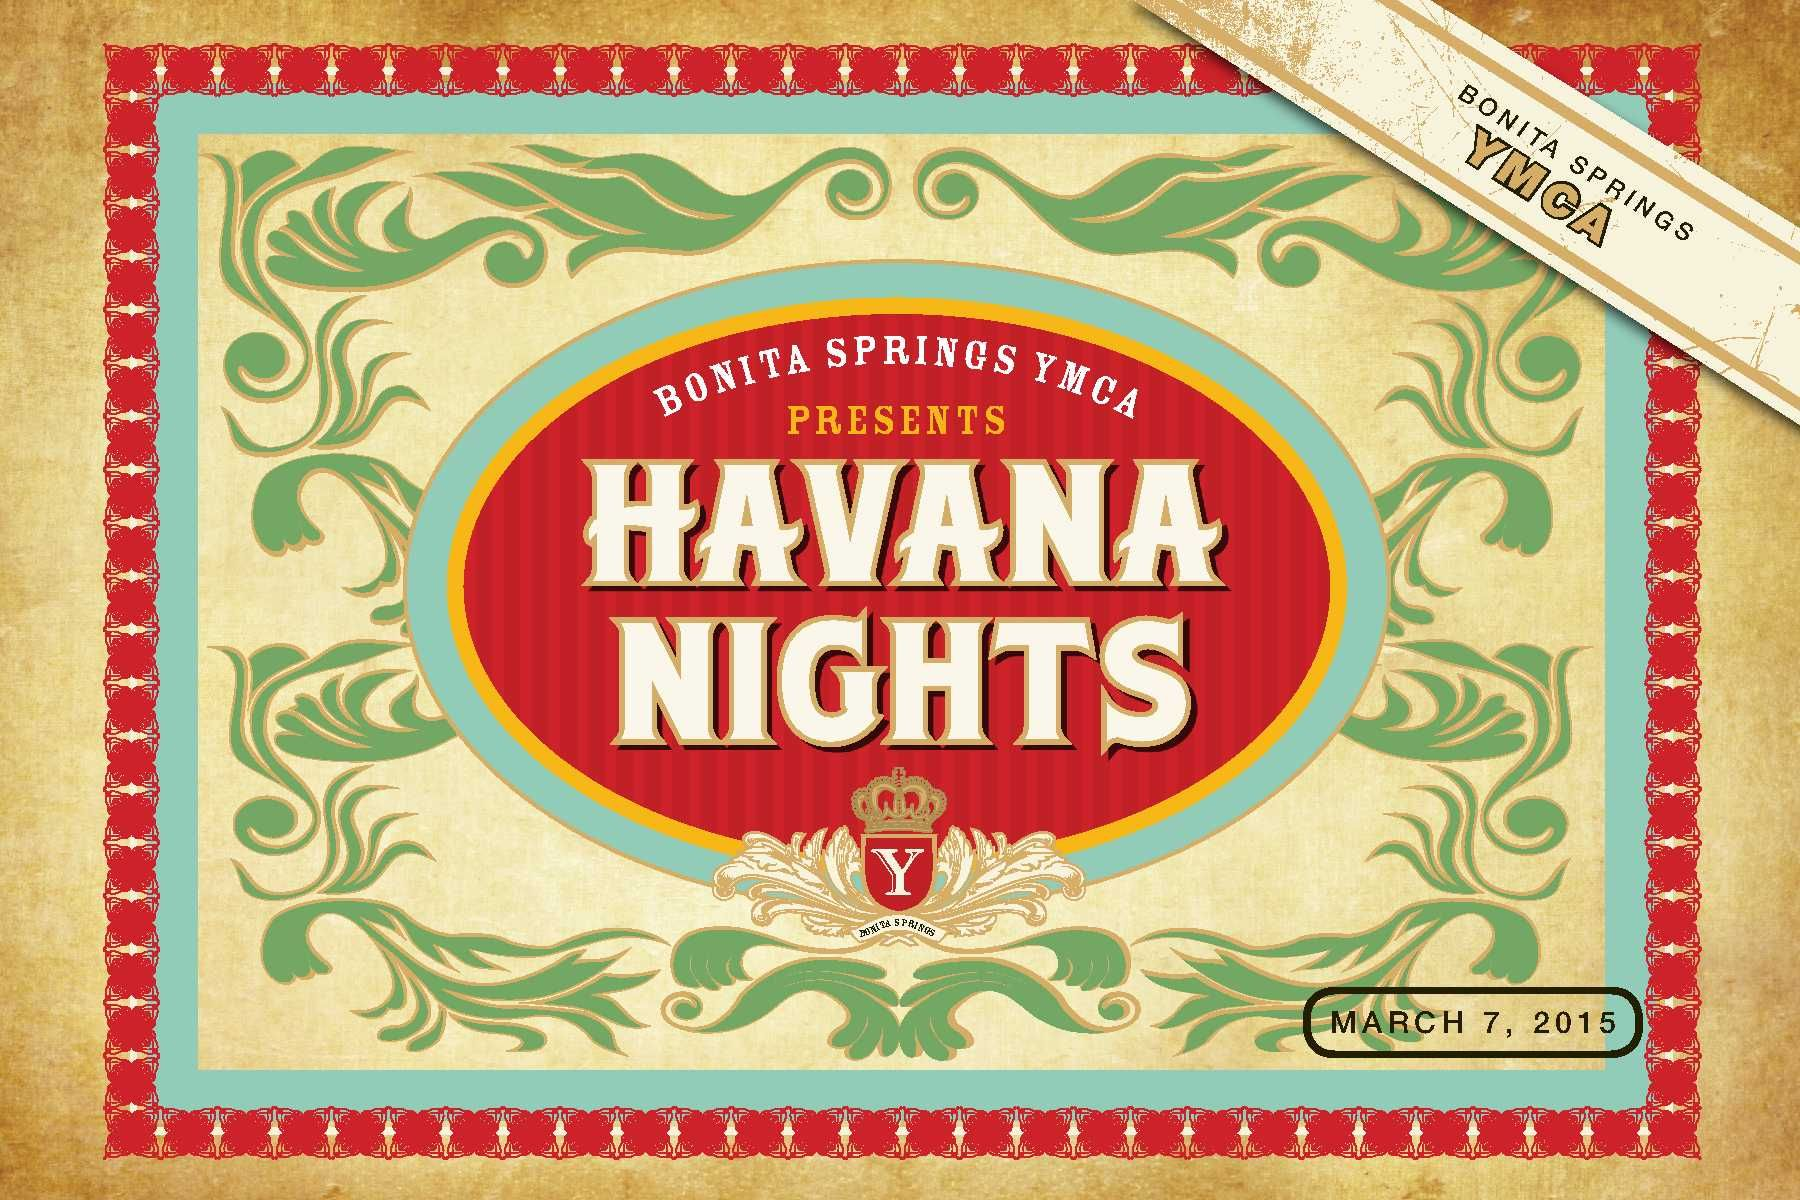 Havana Nights At The Bonita Ymca The Sky Family Ymca Fort Myers Englewood Cape Coral Bonita Springs And Venice Havana Nights Havana Nights Theme Havana